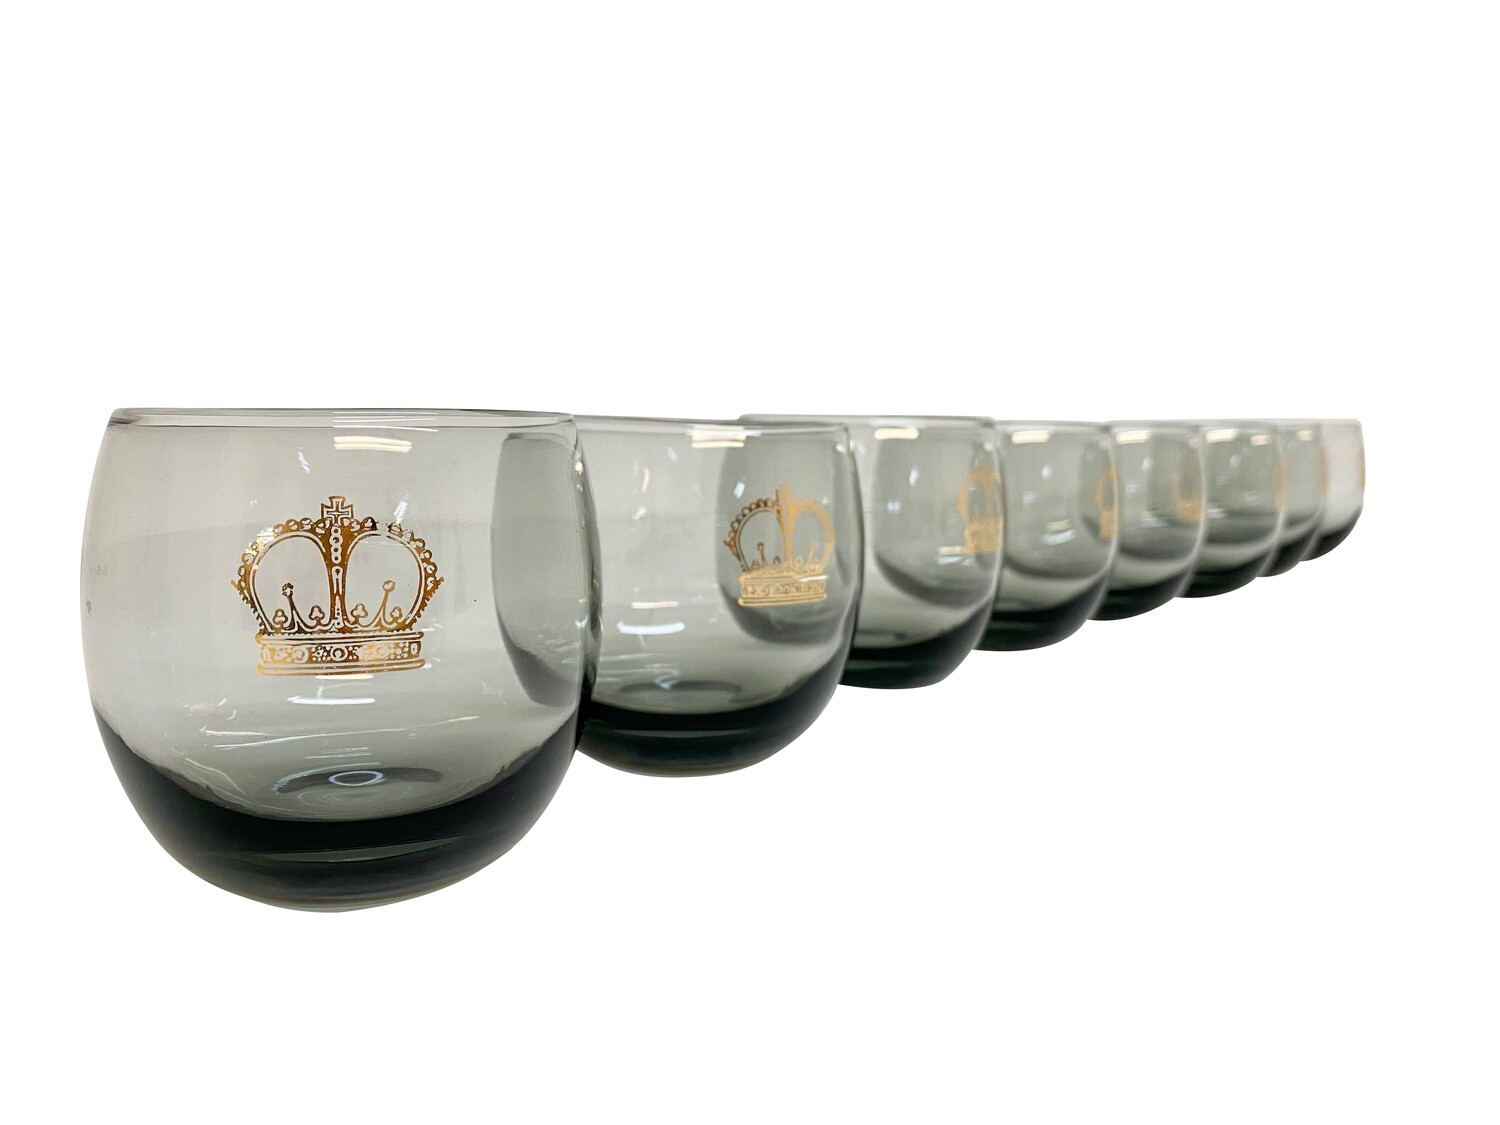 Crowned Set of 8 Roly Poly Barware in Smokey Gray